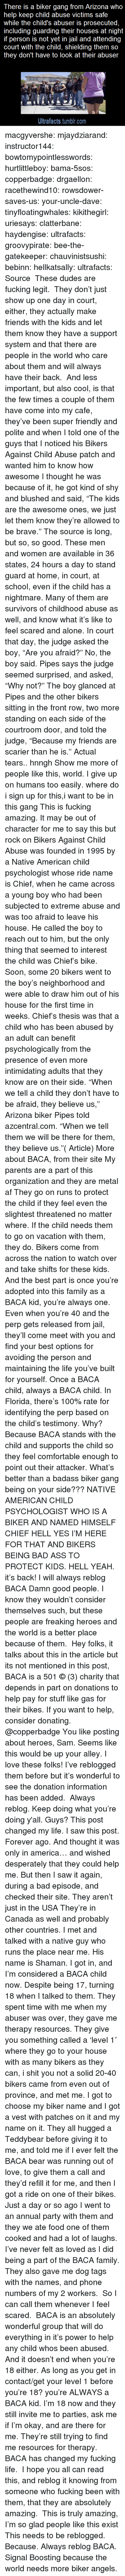 "Af, Being Alone, and America: There is a biker gang from Arizona who  help keep child abuse victims safe  while the child's abuser is prosecuted,  including guarding their houses at night  person is not yet in jail and attending  court with the child, shielding them so  they don't have to look at their abuser  Ultrafacts.tumblr.com macgyvershe: mjaydziarand:  instructor144:  bowtomypointlesswords:  hurtlittleboy:  bama-5sos:  copperbadge:  drgaellon:  racethewind10:  rowsdower-saves-us:  your-uncle-dave:  tinyfloatingwhales:  kikithegirl:  uriesays:  clatterbane:  haydengise:  ultrafacts:  groovypirate:  bee-the-gatekeeper:  chauvinistsushi:  bebinn:  hellkatsally:  ultrafacts:  Source   These dudes are fucking legit.  They don't just show up one day in court, either, they actually make friends with the kids and let them know they have a support system and that there are people in the world who care about them and will always have their back.  And less important, but also cool, is that the few times a couple of them have come into my cafe, they've been super friendly and polite and when I told one of the guys that I noticed his Bikers Against Child Abuse patch and wanted him to know how awesome I thought he was because of it, he got kind of shy and blushed and said, ""The kids are the awesome ones, we just let them know they're allowed to be brave.""  The source is long, but so, so good. These men and women are available in 36 states, 24 hours a day to stand guard at home, in court, at school, even if the child has a nightmare. Many of them are survivors of childhood abuse as well, and know what it's like to feel scared and alone.  In court that day, the judge asked the boy, ""Are you afraid?"" No, the boy said. Pipes says the judge seemed surprised, and asked, ""Why not?"" The boy glanced at Pipes and the other bikers sitting in the front row, two more standing on each side of the courtroom door, and told the judge, ""Because my friends are scarier than he is.""   Actual tears.. hnngh  Show me more of people like this, world. I give up on humans too easily.  where do i sign up for this,i want to be in this gang    This is fucking amazing. It may be out of character for me to say this but rock on  Bikers Against Child Abuse was founded in 1995 by a Native American child psychologist whose ride name is Chief, when he came across a young boy who had been subjected to extreme abuse and was too afraid to leave his house. He called the boy to reach out to him, but the only thing that seemed to interest the child was Chief's bike. Soon, some 20 bikers went to the boy's neighborhood and were able to draw him out of his house for the first time in weeks. Chief's thesis was that a child who has been abused by an adult can benefit psychologically from the presence of even more intimidating adults that they know are on their side. ""When we tell a child they don't have to be afraid, they believe us,"" Arizona biker Pipes told azcentral.com. ""When we tell them we will be there for them, they believe us.""( Article) More about BACA, from their site  My parents are a part of this organization and they are metal af They go on runs to protect the child if they feel even the slightest threatened no matter where. If the child needs them to go on vacation with them, they do. Bikers come from across the nation to watch over and take shifts for these kids. And the best part is once you're adopted into this family as a BACA kid, you're always one. Even when you're 40 and the perp gets released from jail, they'll come meet with you and find your best options for avoiding the person and maintaining the life you've built for yourself. Once a BACA child, always a BACA child. In Florida, there's 100% rate for identifying the perp based on the child's testimony. Why? Because BACA stands with the child and supports the child so they feel comfortable enough to point out their attacker.  What's better than a badass biker gang being on your side???  NATIVE AMERICAN CHILD PSYCHOLOGIST WHO IS A BIKER AND NAMED HIMSELF CHIEF HELL YES I'M HERE FOR THAT AND BIKERS BEING BAD ASS TO PROTECT KIDS. HELL YEAH.  it's back! I will always reblog BACA  Damn good people.  I know they wouldn't consider themselves such, but these people are freaking heroes and the world is a better place because of them.   Hey folks, it talks about this in the article but its not mentioned in this post, BACA is a 501 © (3) charity that depends in part on donations to help pay for stuff like gas for their bikes. If you want to help, consider donating.   @copperbadge You like posting about heroes, Sam. Seems like this would be up your alley.  I love these folks! I've reblogged them before but it's wonderful to see the donation information has been added.    Always reblog. Keep doing what you're doing y'all.  Guys? This post changed my life. I saw this post. Forever ago. And thought it was only in america… and wished desperately that they could help me. But then I saw it again, during a bad episode, and checked their site. They aren't just in the USA They're in Canada as well and probably other countries. I met and talked with a native guy who runs the place near me. His name is Shaman. I got in, and I'm considered a BACA child now. Despite being 17, turning 18 when I talked to them. They spent time with me when my abuser was over, they gave me therapy resources. They give you something called a 'level 1′ where they go to your house with as many bikers as they can, i shit you not a solid 20-40 bikers came from even out of province, and met me. I got to choose my biker name and I got a vest with patches on it and my name on it. They all hugged a Teddybear before giving it to me, and told me if I ever felt the BACA bear was running out of love, to give them a call and they'd refill it for me, and then I got a ride on one of their bikes. Just a day or so ago I went to an annual party with them and they we ate food one of them cooked and had a lot of laughs.  I've never felt as loved as I did being a part of the BACA family. They also gave me dog tags with the names, and phone numbers of my 2 workers.  So I can call them whenever I feel scared.  BACA is an absolutely wonderful group that will do everything in it's power to help any child whos been abused.  And it doesn't end when you're 18 either. As long as you get in contact/get your level 1 before you're 18? you're ALWAYS a BACA kid. I'm 18 now and they still invite me to parties, ask me if I'm okay, and are there for me. They're still trying to find me resources for therapy.  BACA has changed my fucking life.  I hope you all can read this, and reblog it knowing from someone who fucking been with them, that they are absolutely amazing.    This is truly amazing, I'm so glad people like this exist  This needs to be reblogged. Because.  Always reblog BACA.   Signal Boosting because the world needs more biker angels."